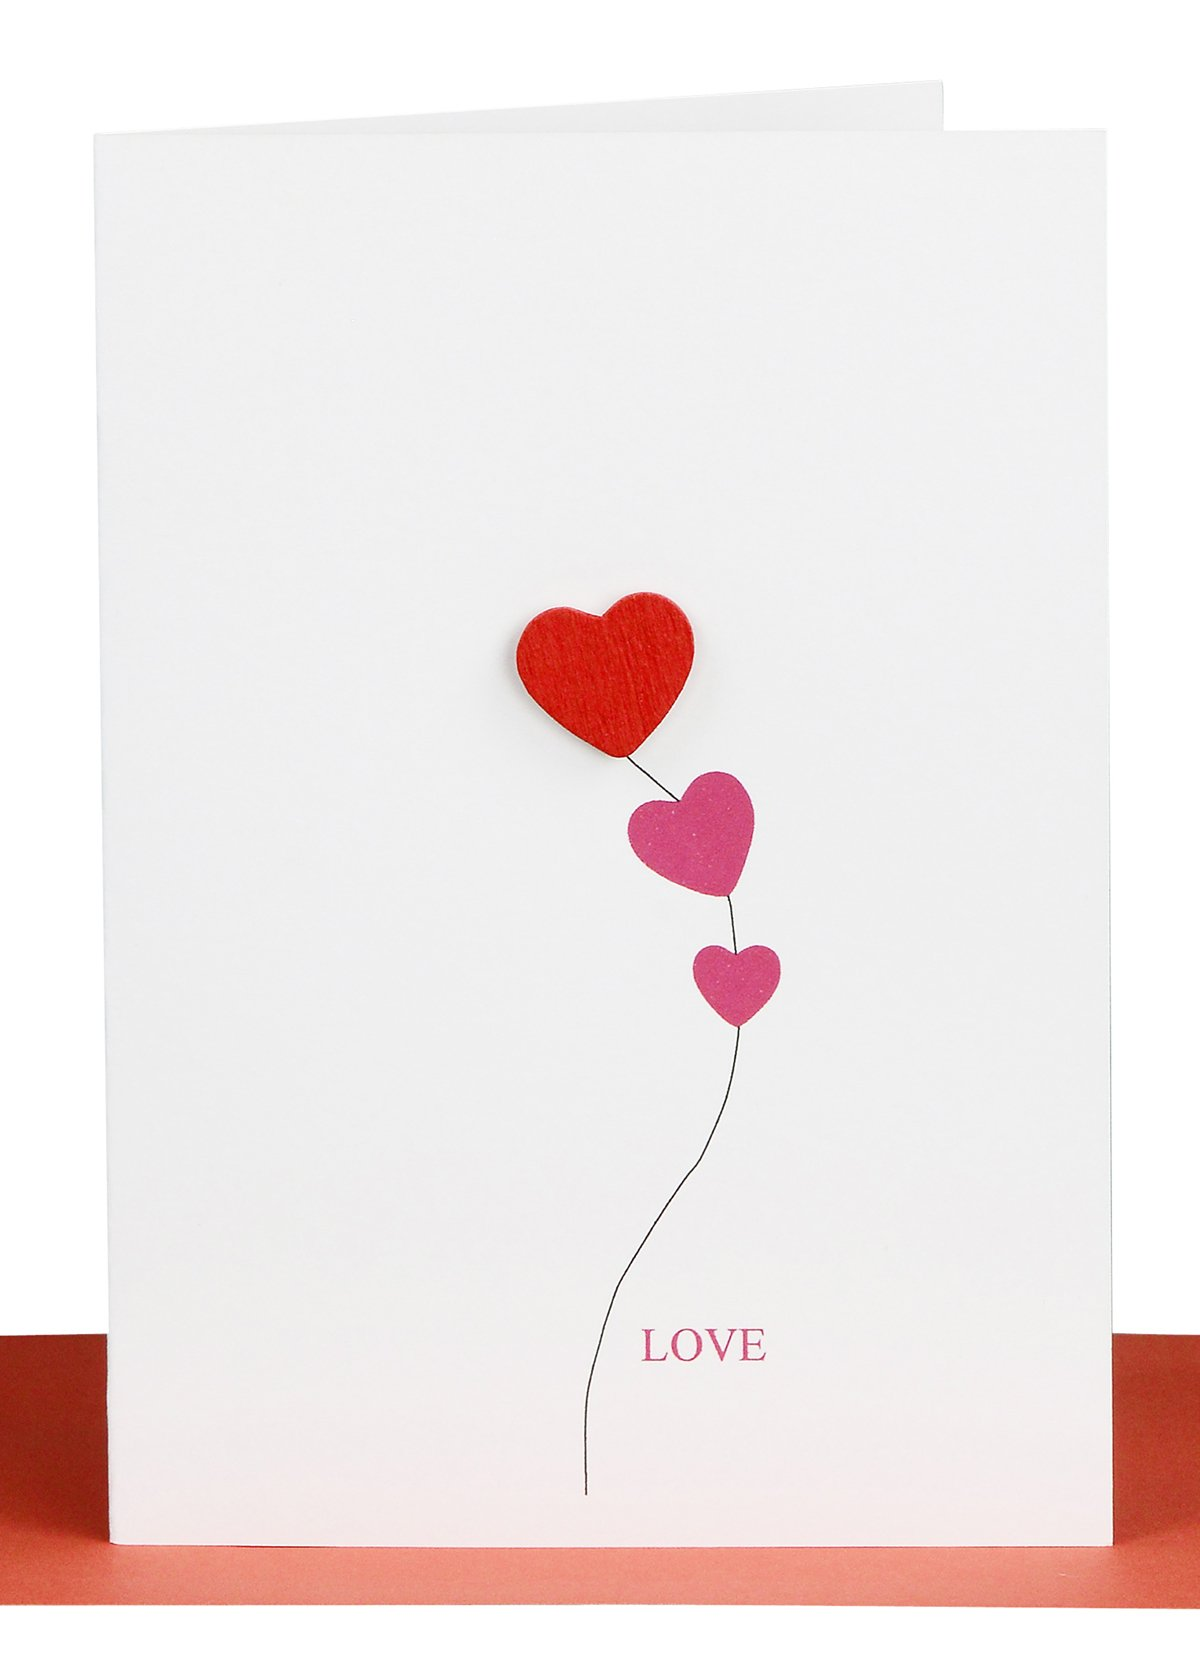 Valentines day cards love card red heart lils cards sydney valentines day cards love card red heart m4hsunfo